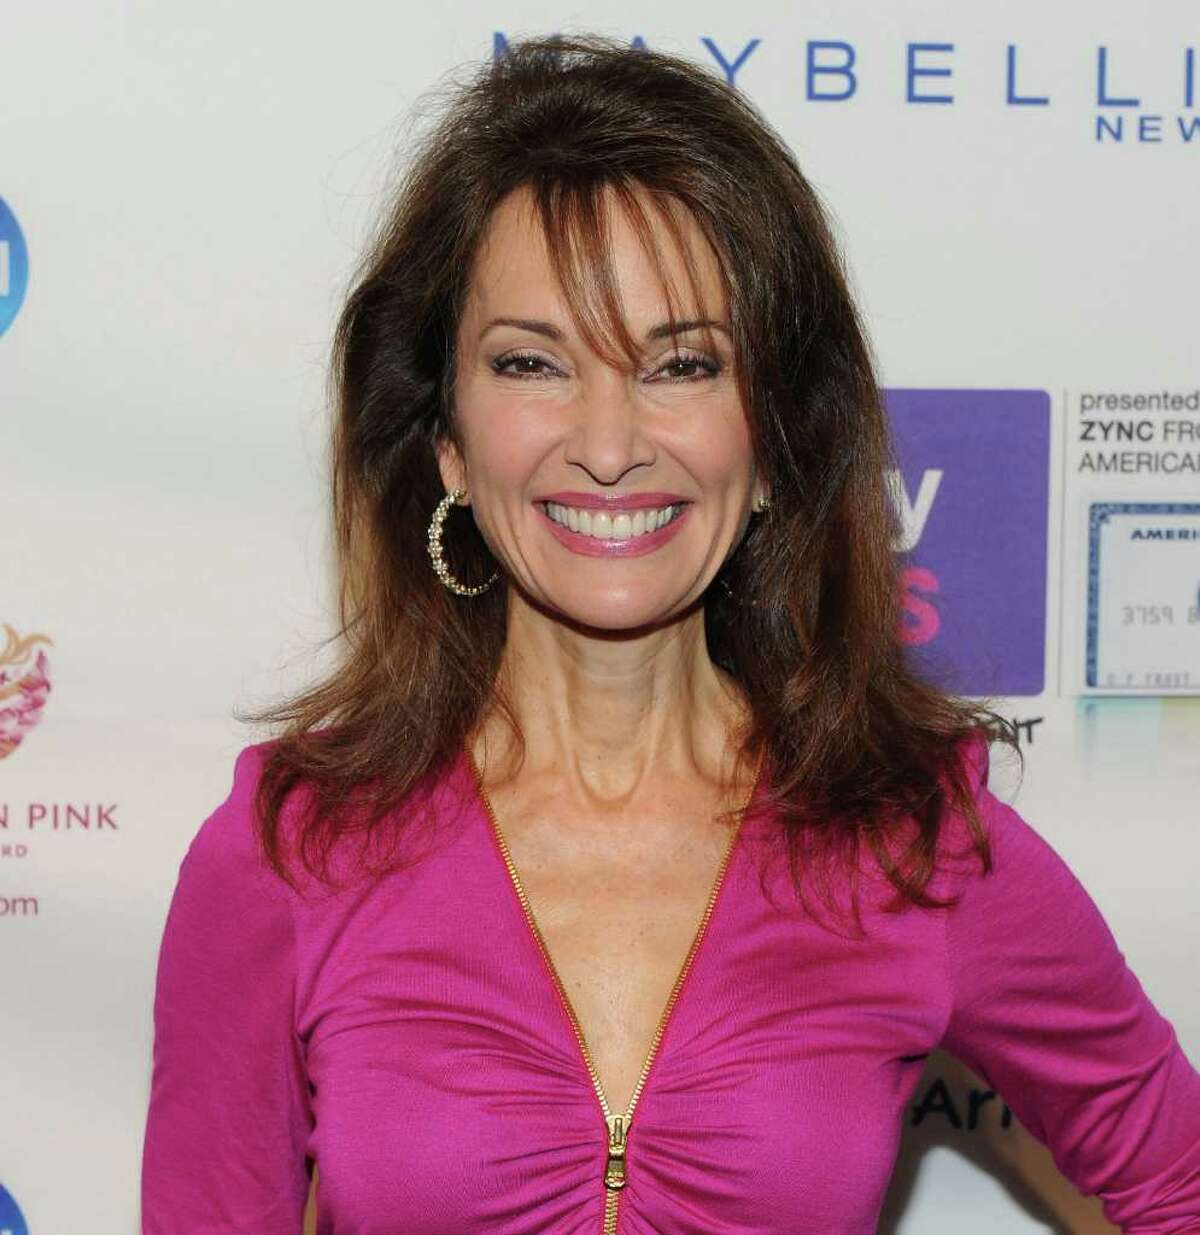 Susan Lucci plays Erica Kane on All My CHildren.